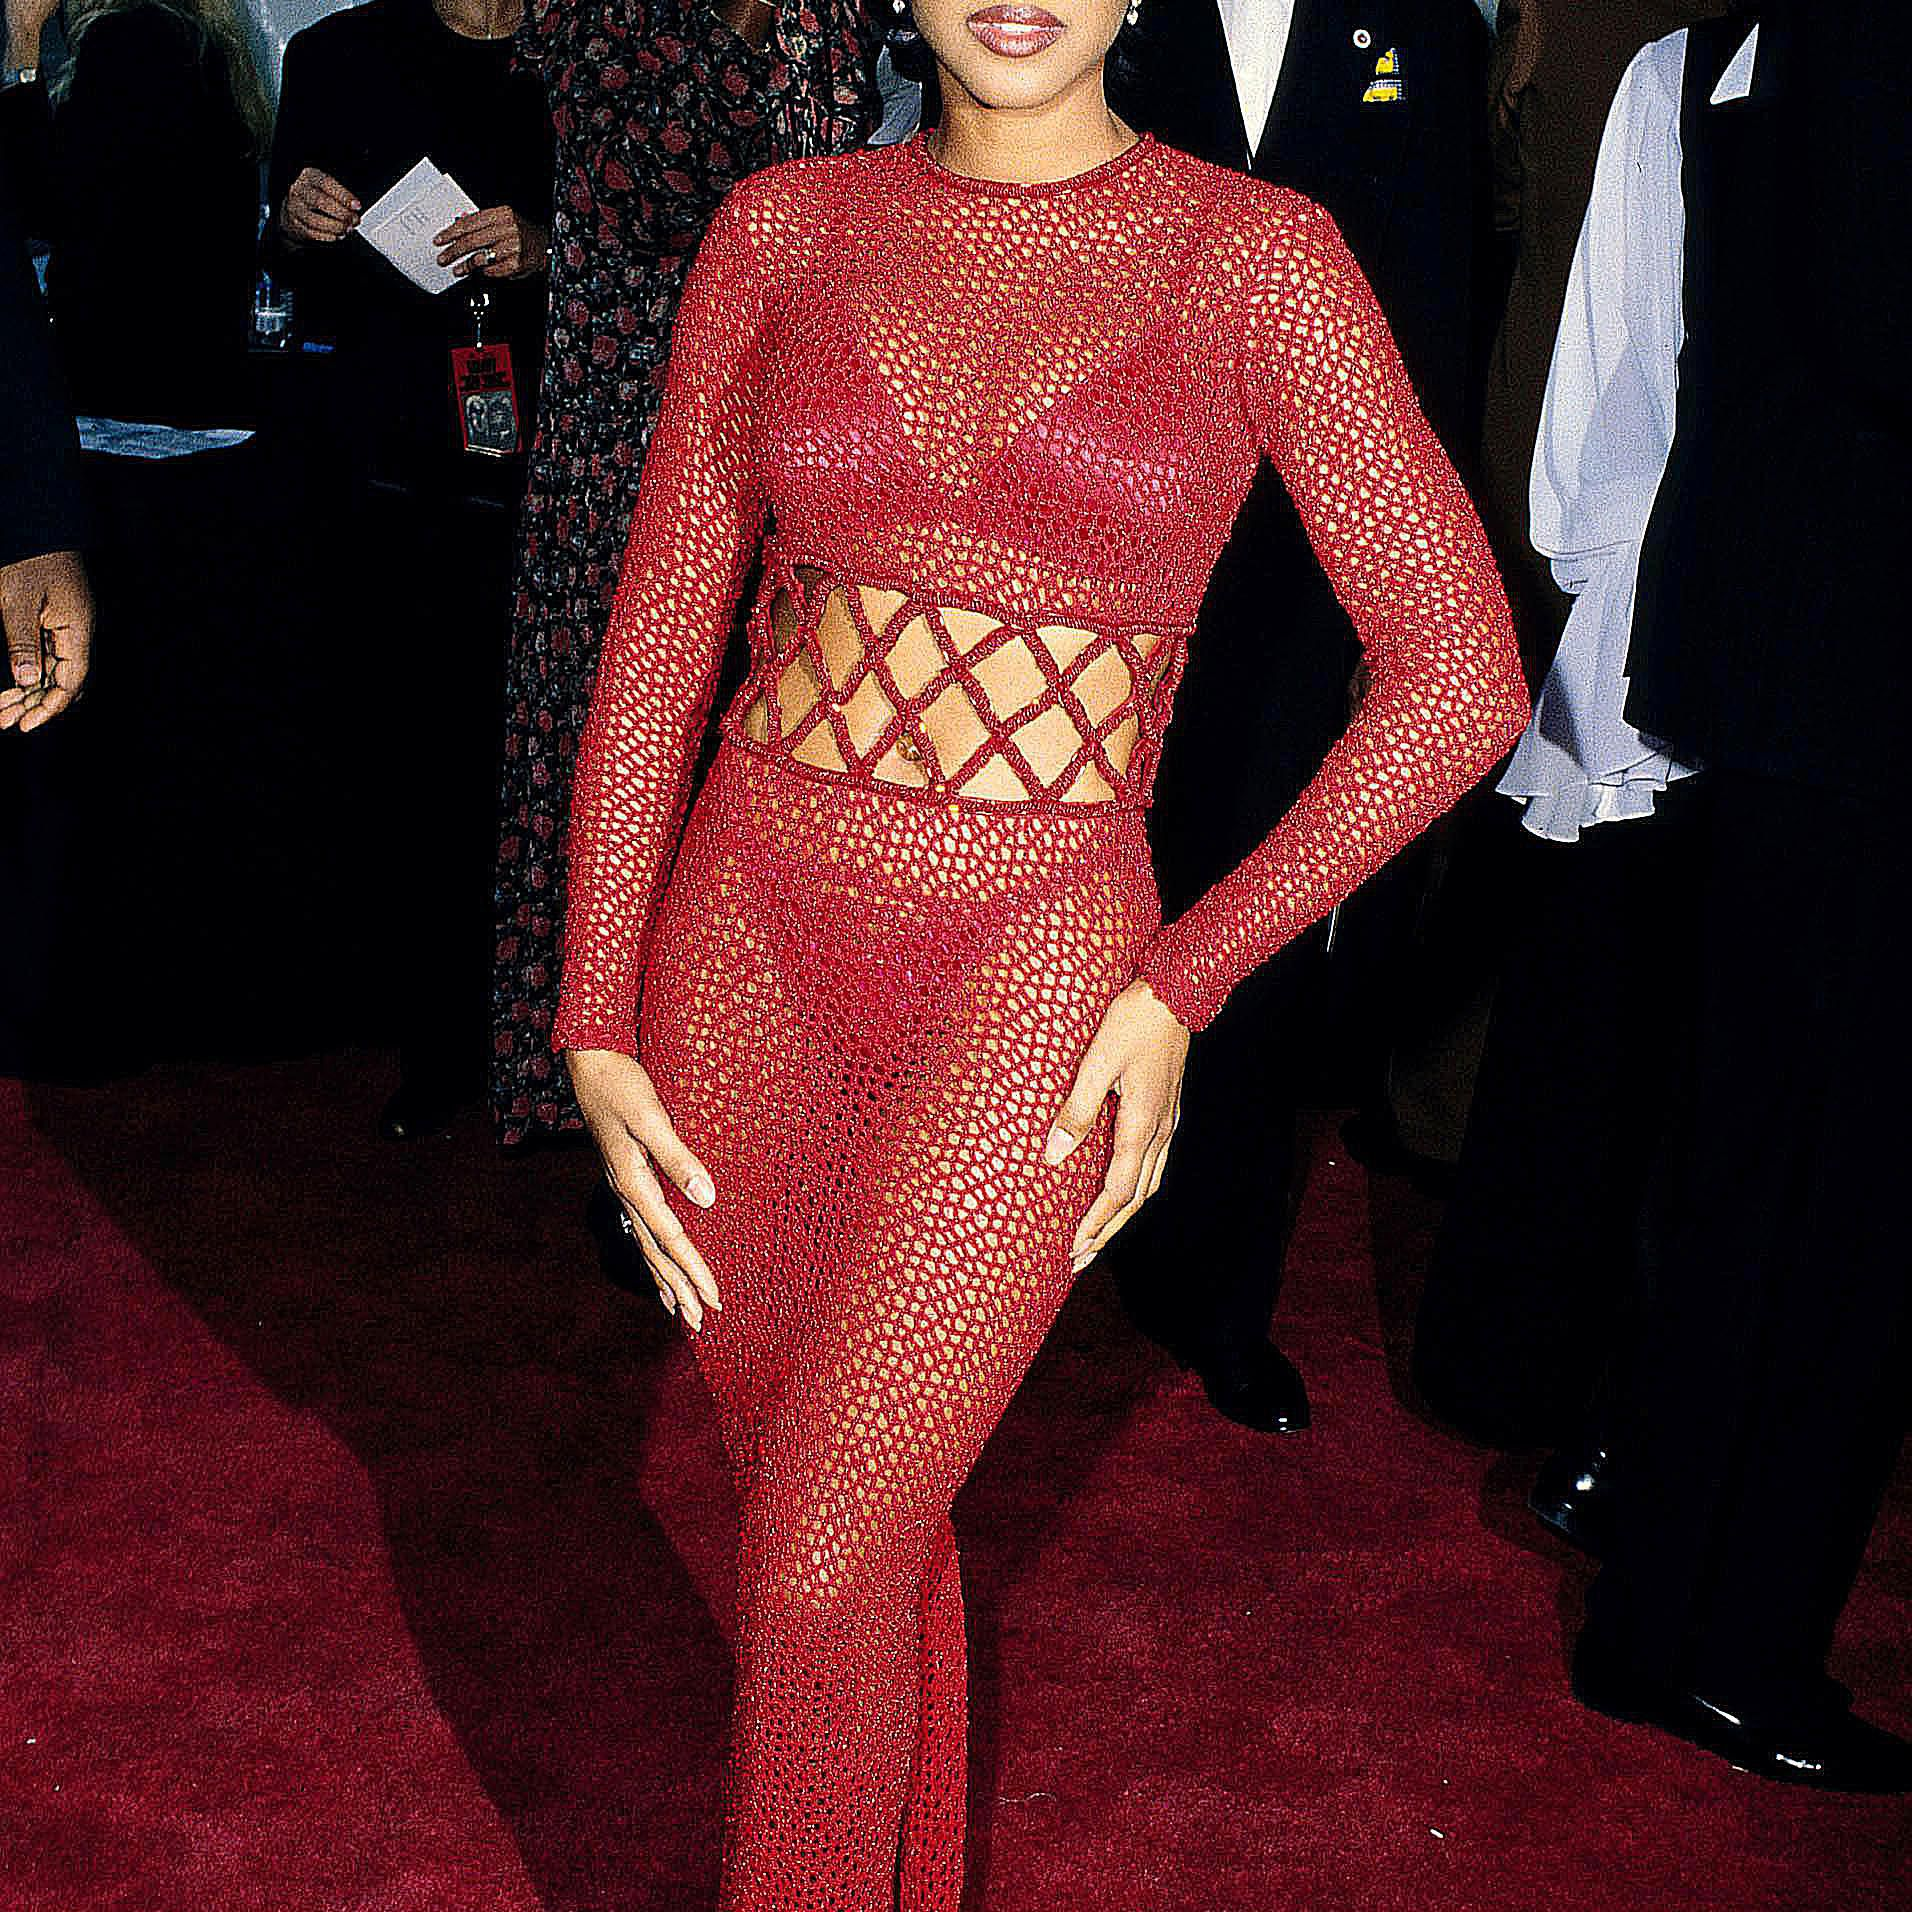 Toni Braxton wearing a pink mesh outfit on the red carpet